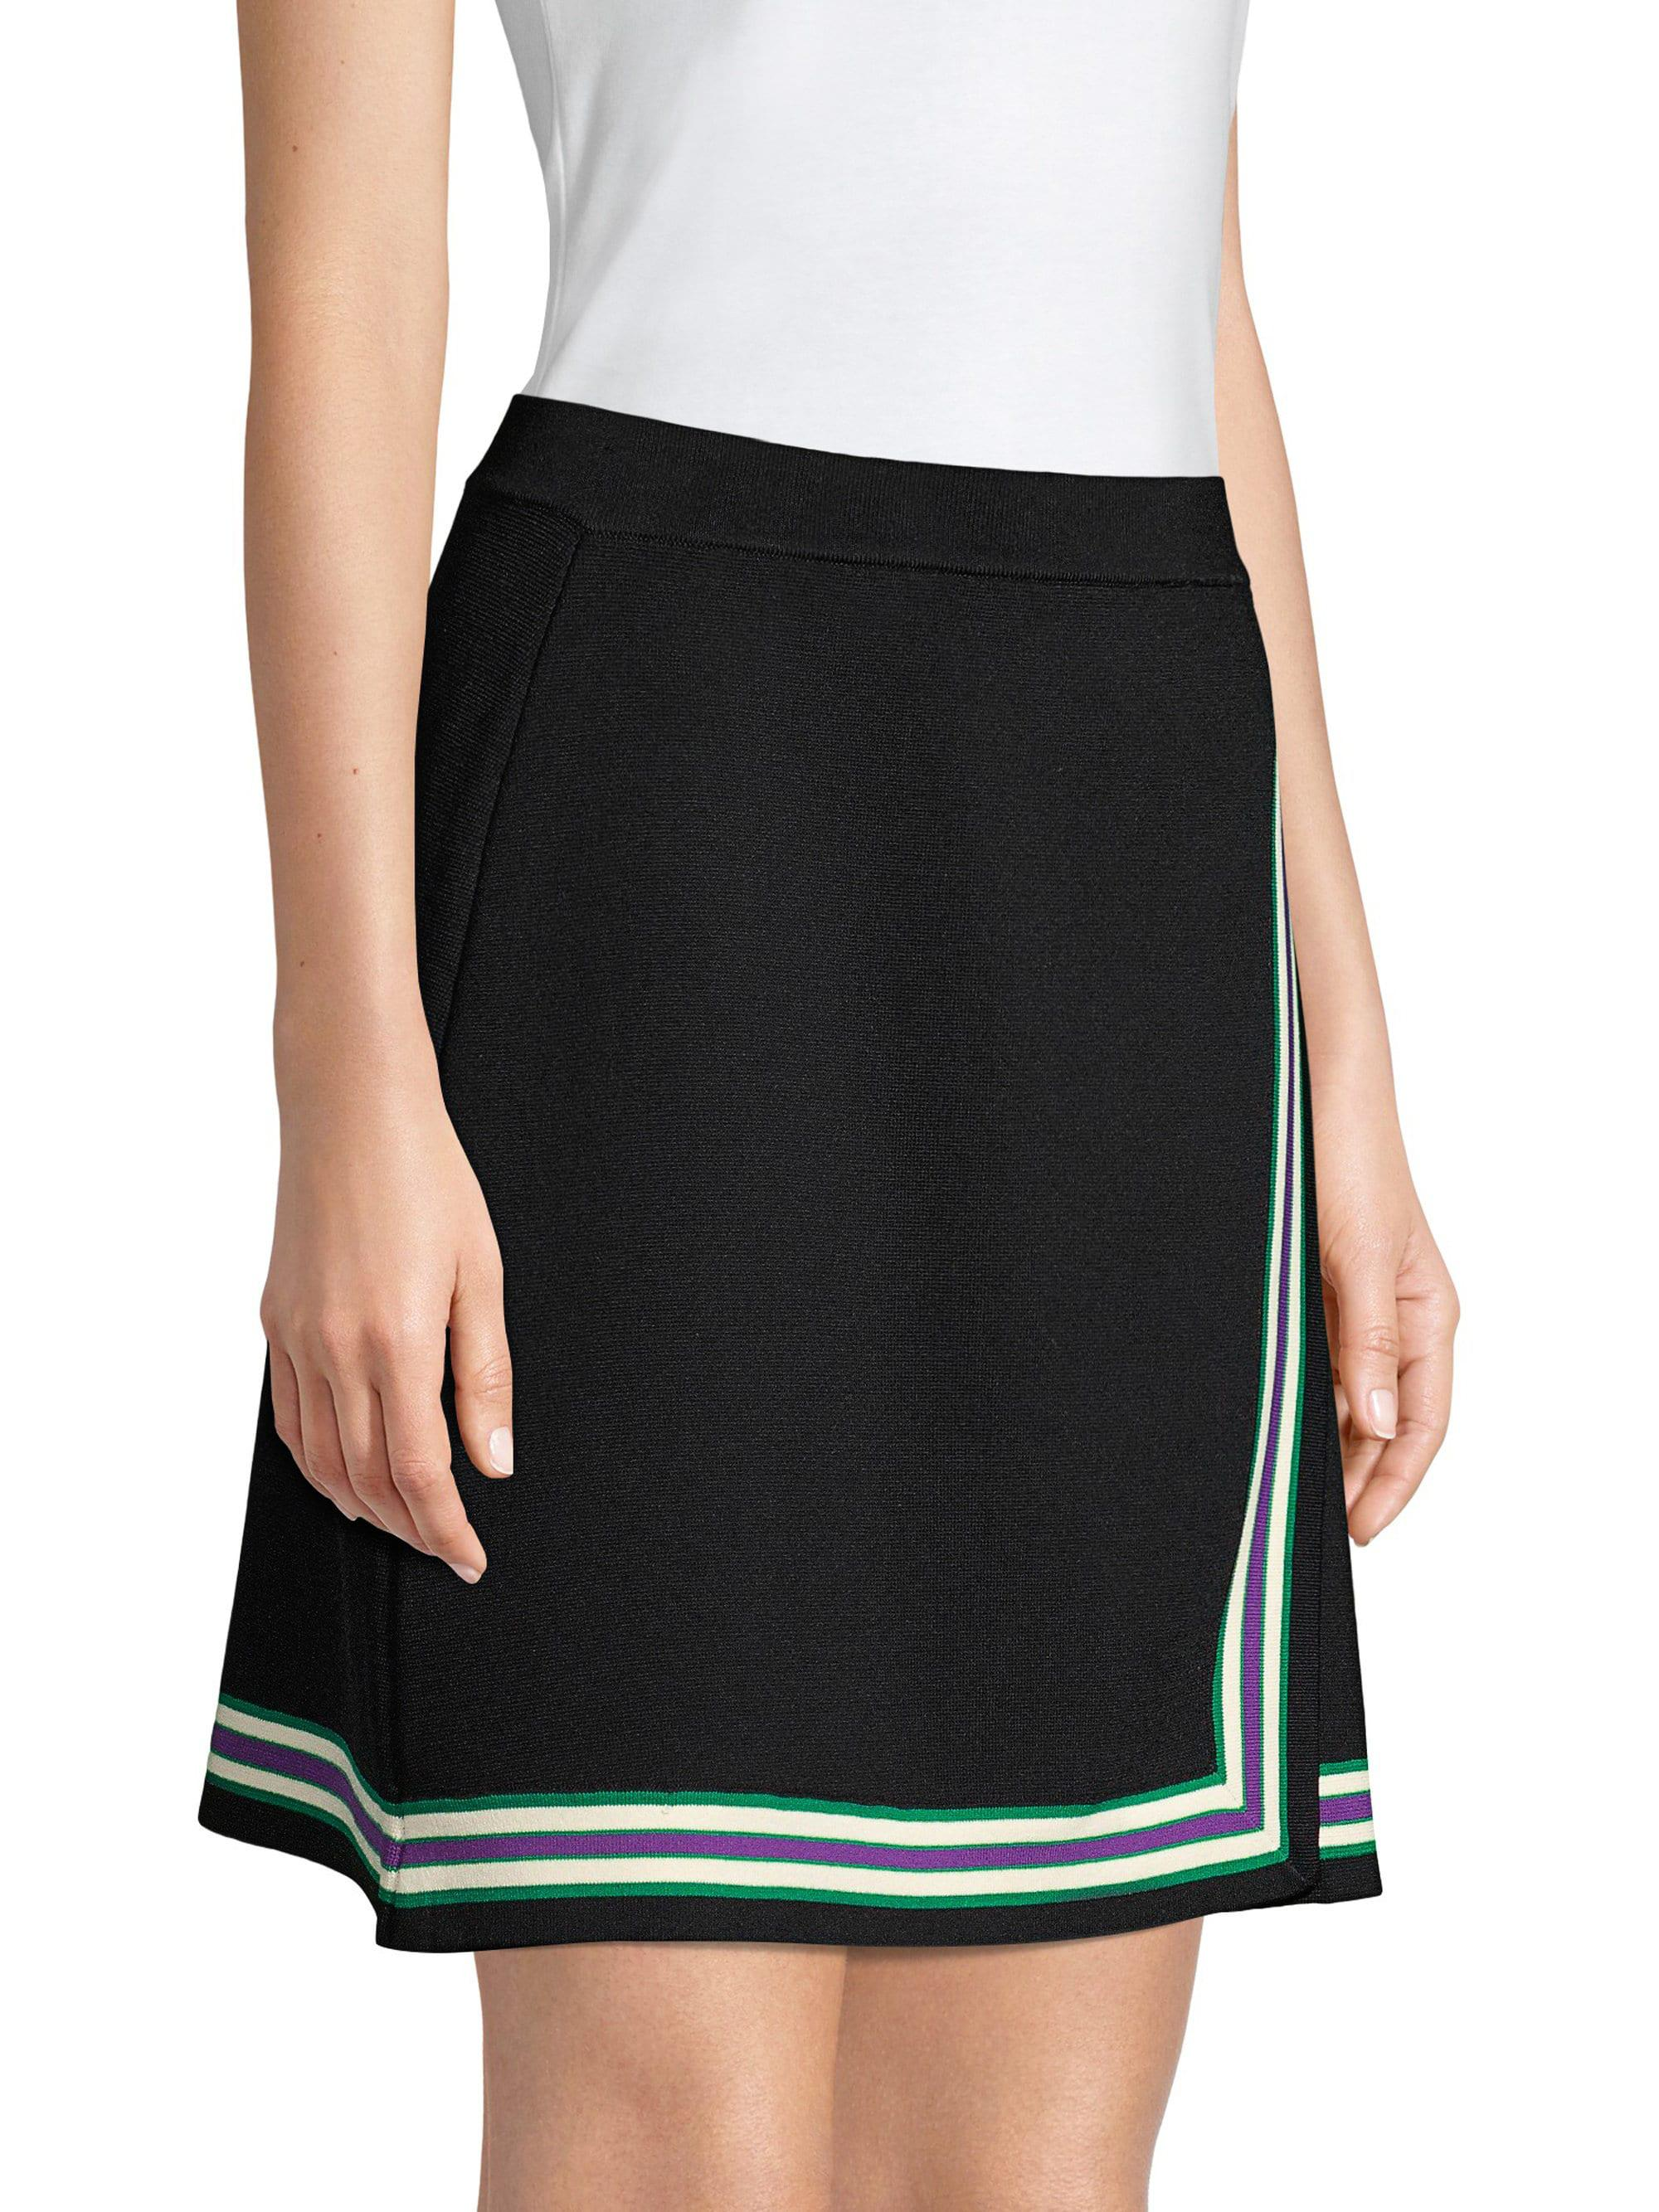 Sandro Women's Elodie Striped Crossover Skirt Noir